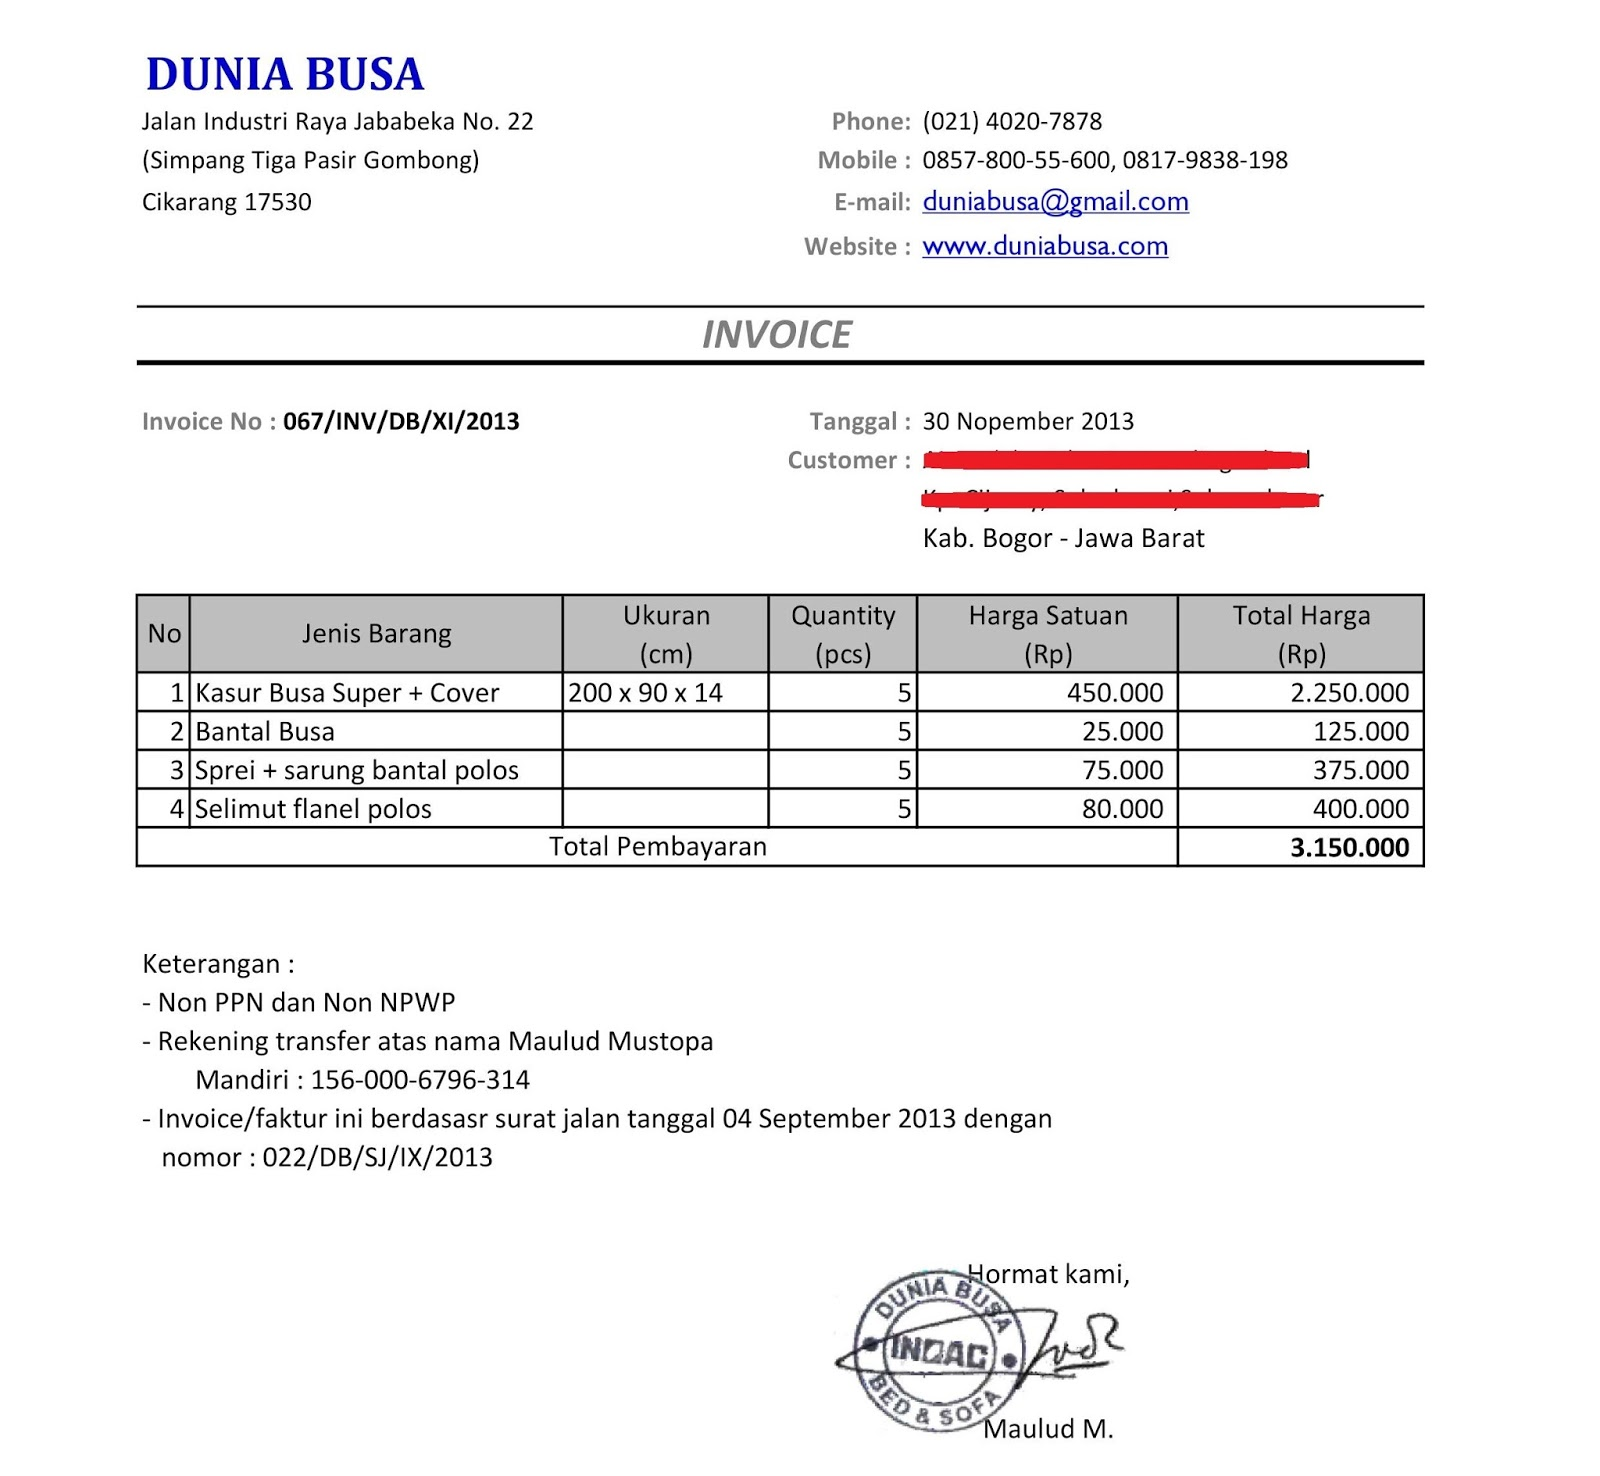 Usdgus  Pleasing Free Invoice Online  Create Invoice Online  Invoice Template  With Fair Contoh Format Invoice Atau Surat Tagihan  Brankas Arsip  Free Invoice Online With Astonishing Invoice Information Also Microsoft Office Invoice In Addition Professional Invoice Template Word And Usps Commercial Invoice As Well As Wordpress Invoice Additionally Electrician Invoice Template From Sklepco With Usdgus  Fair Free Invoice Online  Create Invoice Online  Invoice Template  With Astonishing Contoh Format Invoice Atau Surat Tagihan  Brankas Arsip  Free Invoice Online And Pleasing Invoice Information Also Microsoft Office Invoice In Addition Professional Invoice Template Word From Sklepco